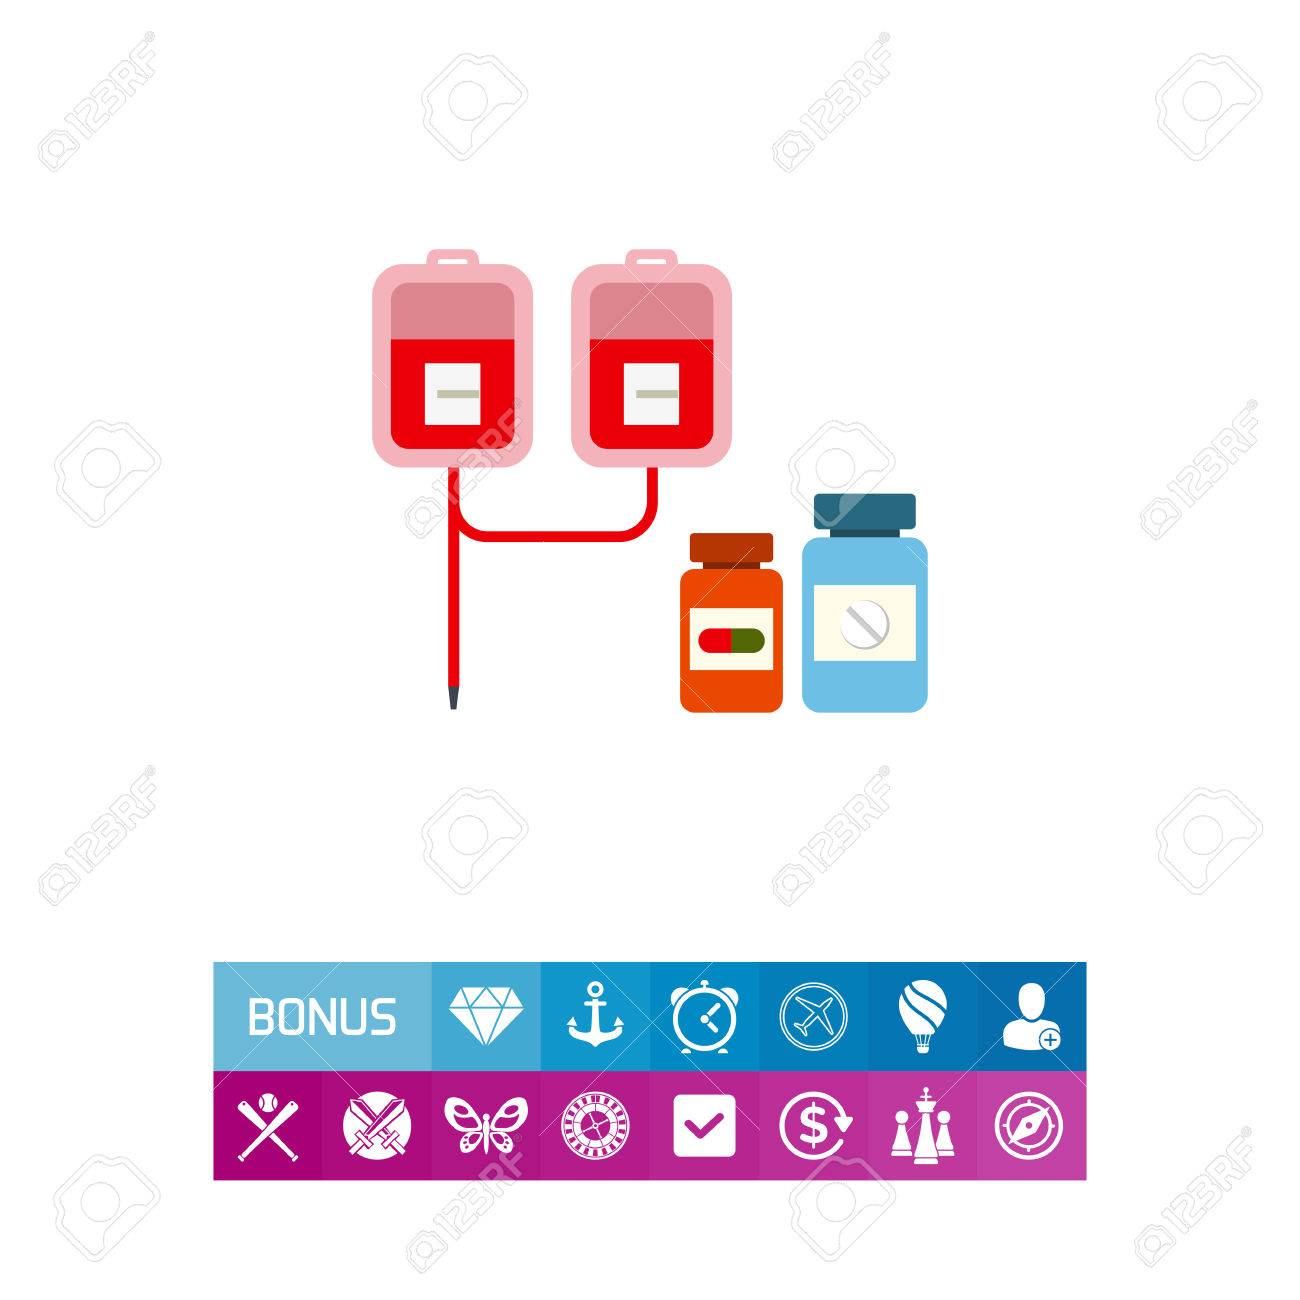 Multicolored vector icon of medical drip with iv bags and two pill bottles - 82518198